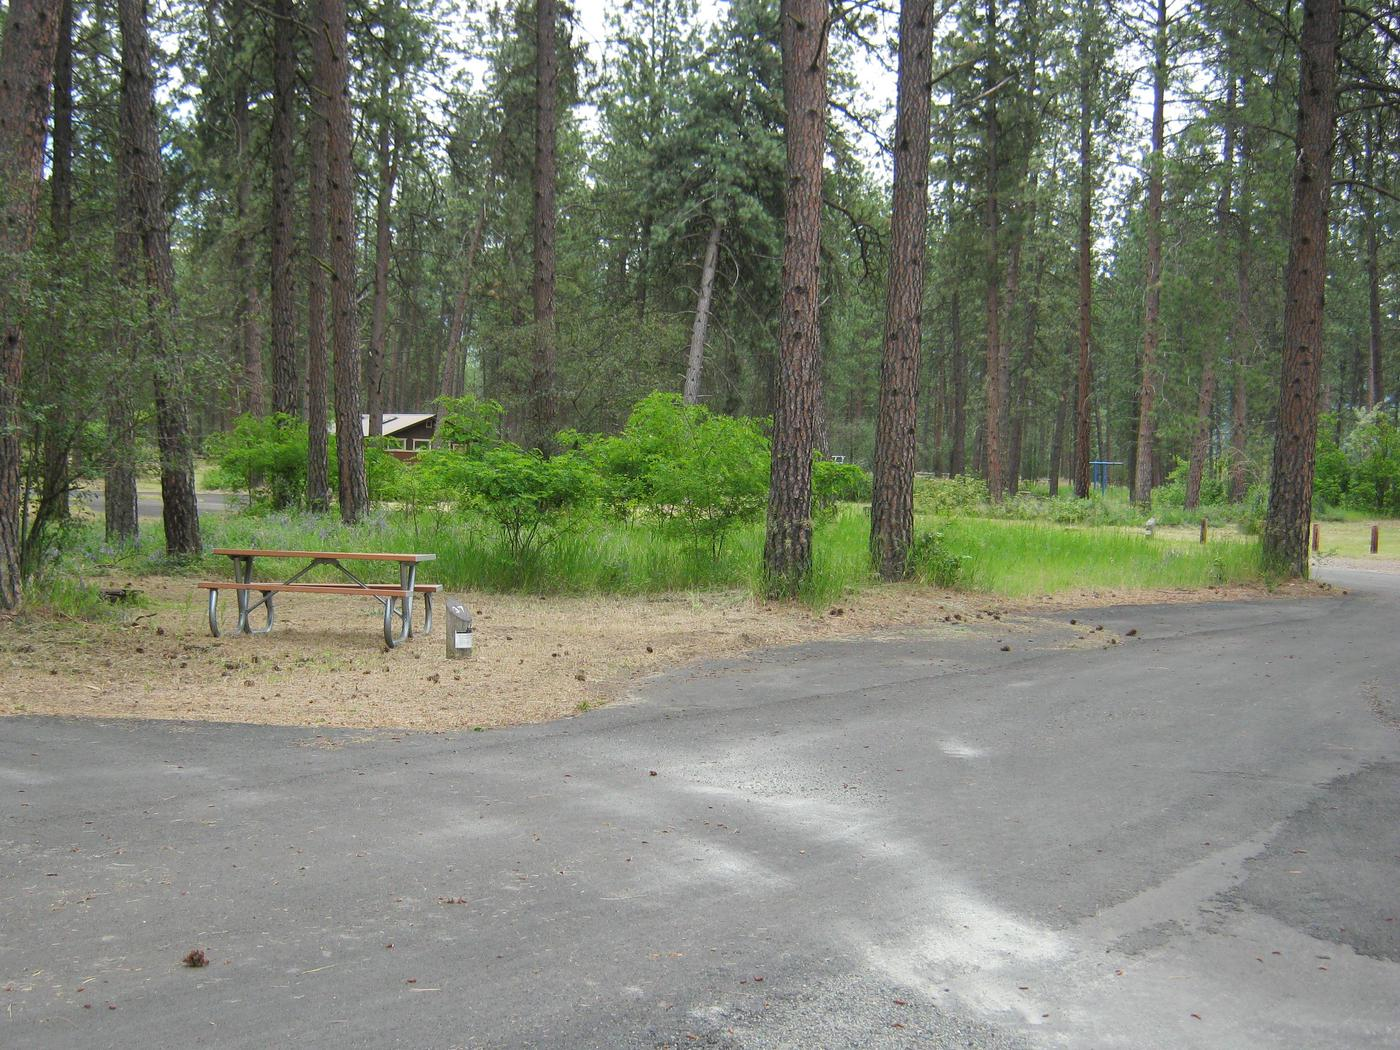 Pull through site with trees in the backgroundSite 37, Narrow parking